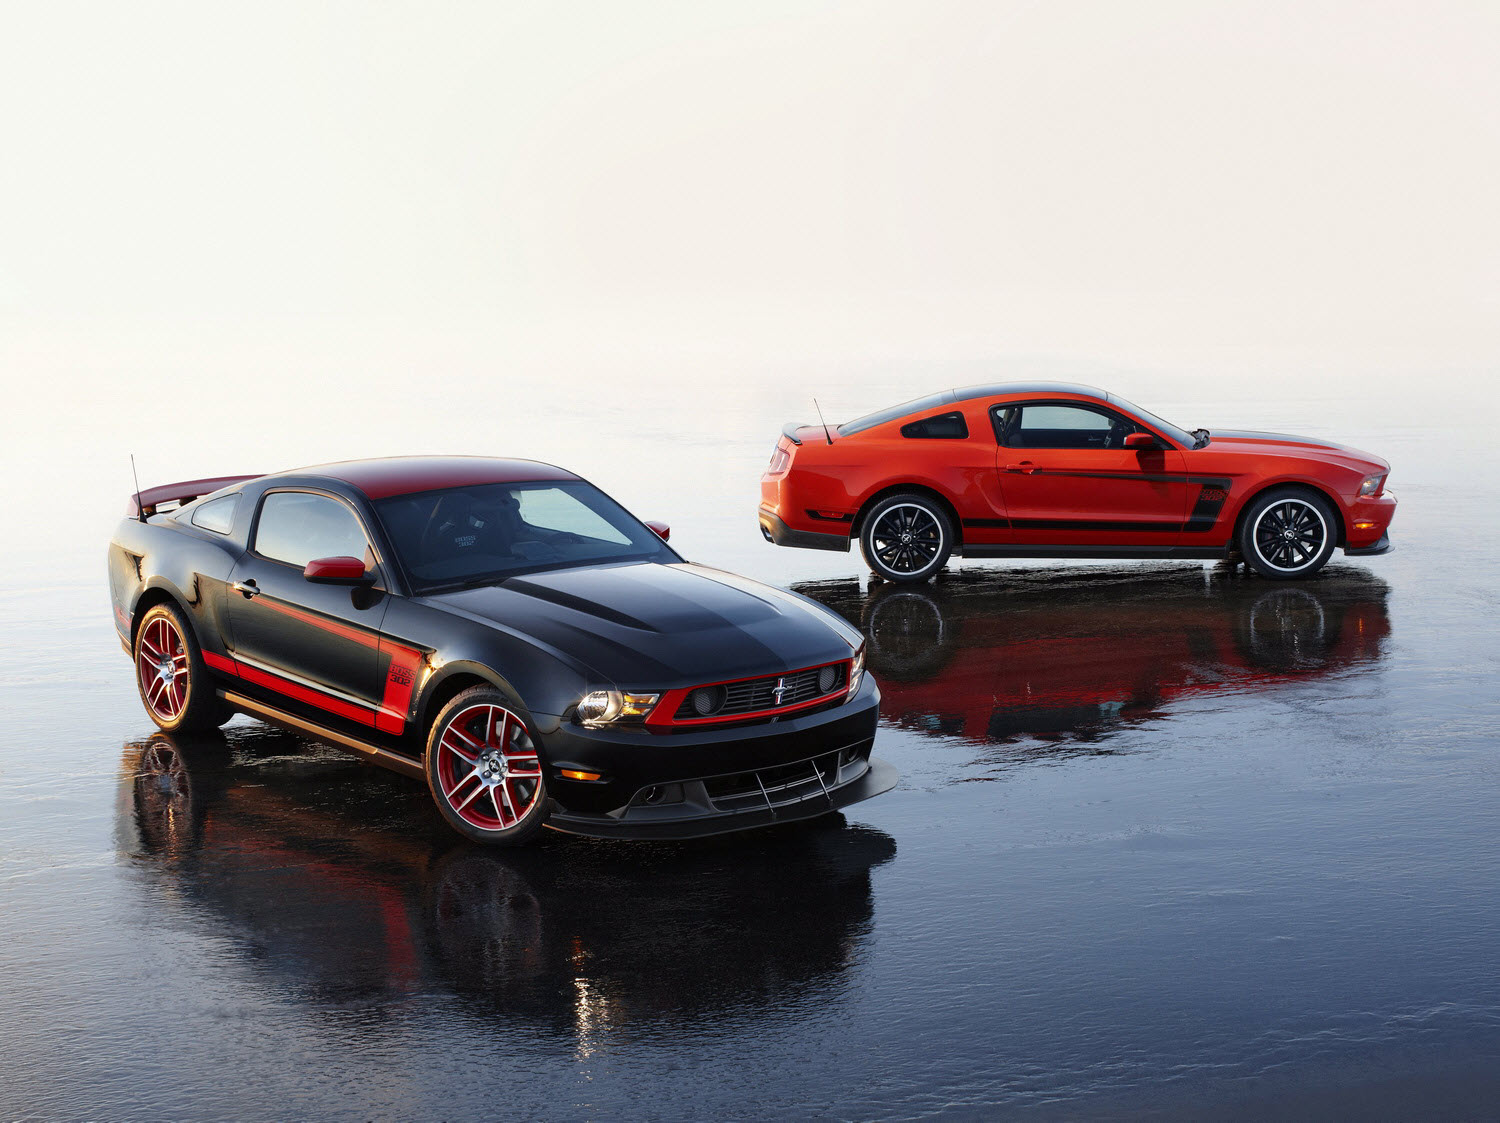 2012 Ford Mustang BOSS302 11 2012 Ford Mustang Boss 302 – Photos, Specifications, Price, Reviews